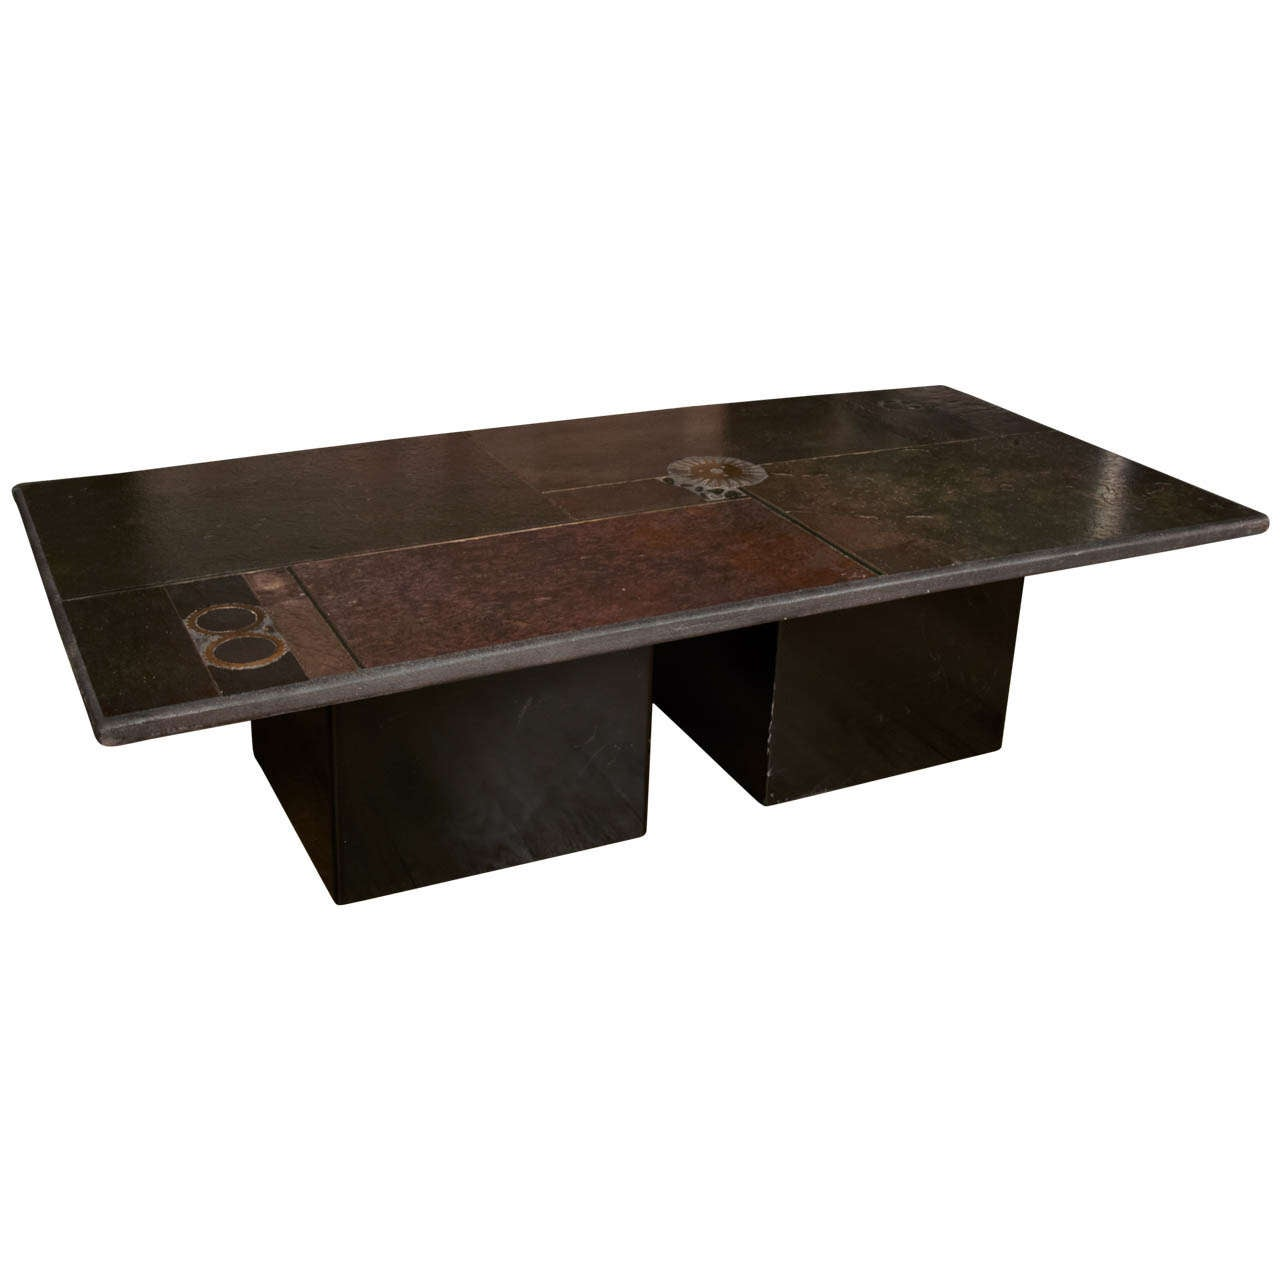 Paul kingma coffee table with slate stone top and brass inlay circa 1980 at 1stdibs Slate top coffee tables